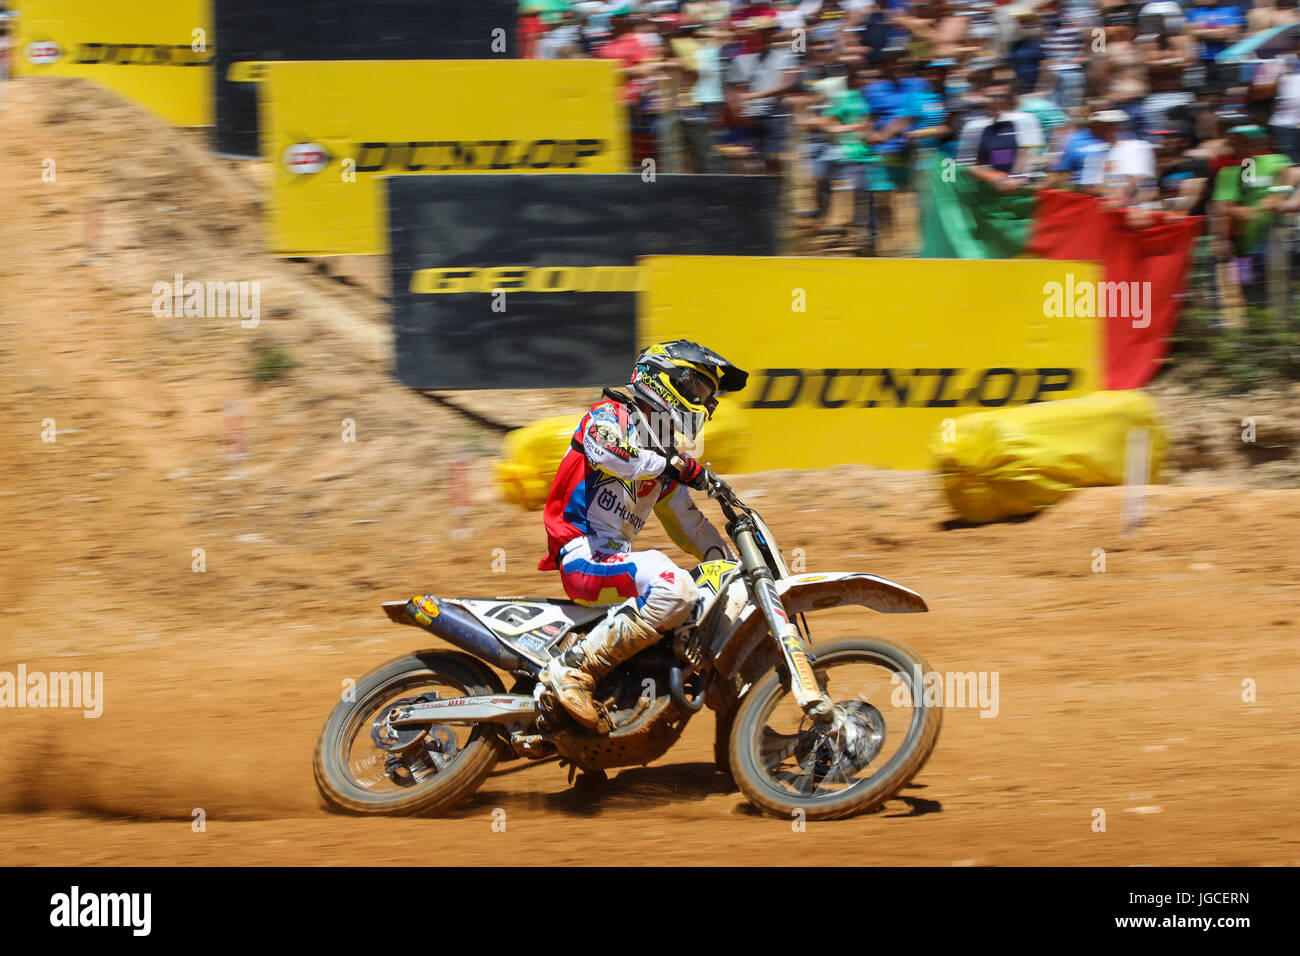 Maximilian Nagl #12 (GER) in Husqvarna of Rockstar Energy Husqvarna Factory Racing in action during the MXGP World - Stock Image